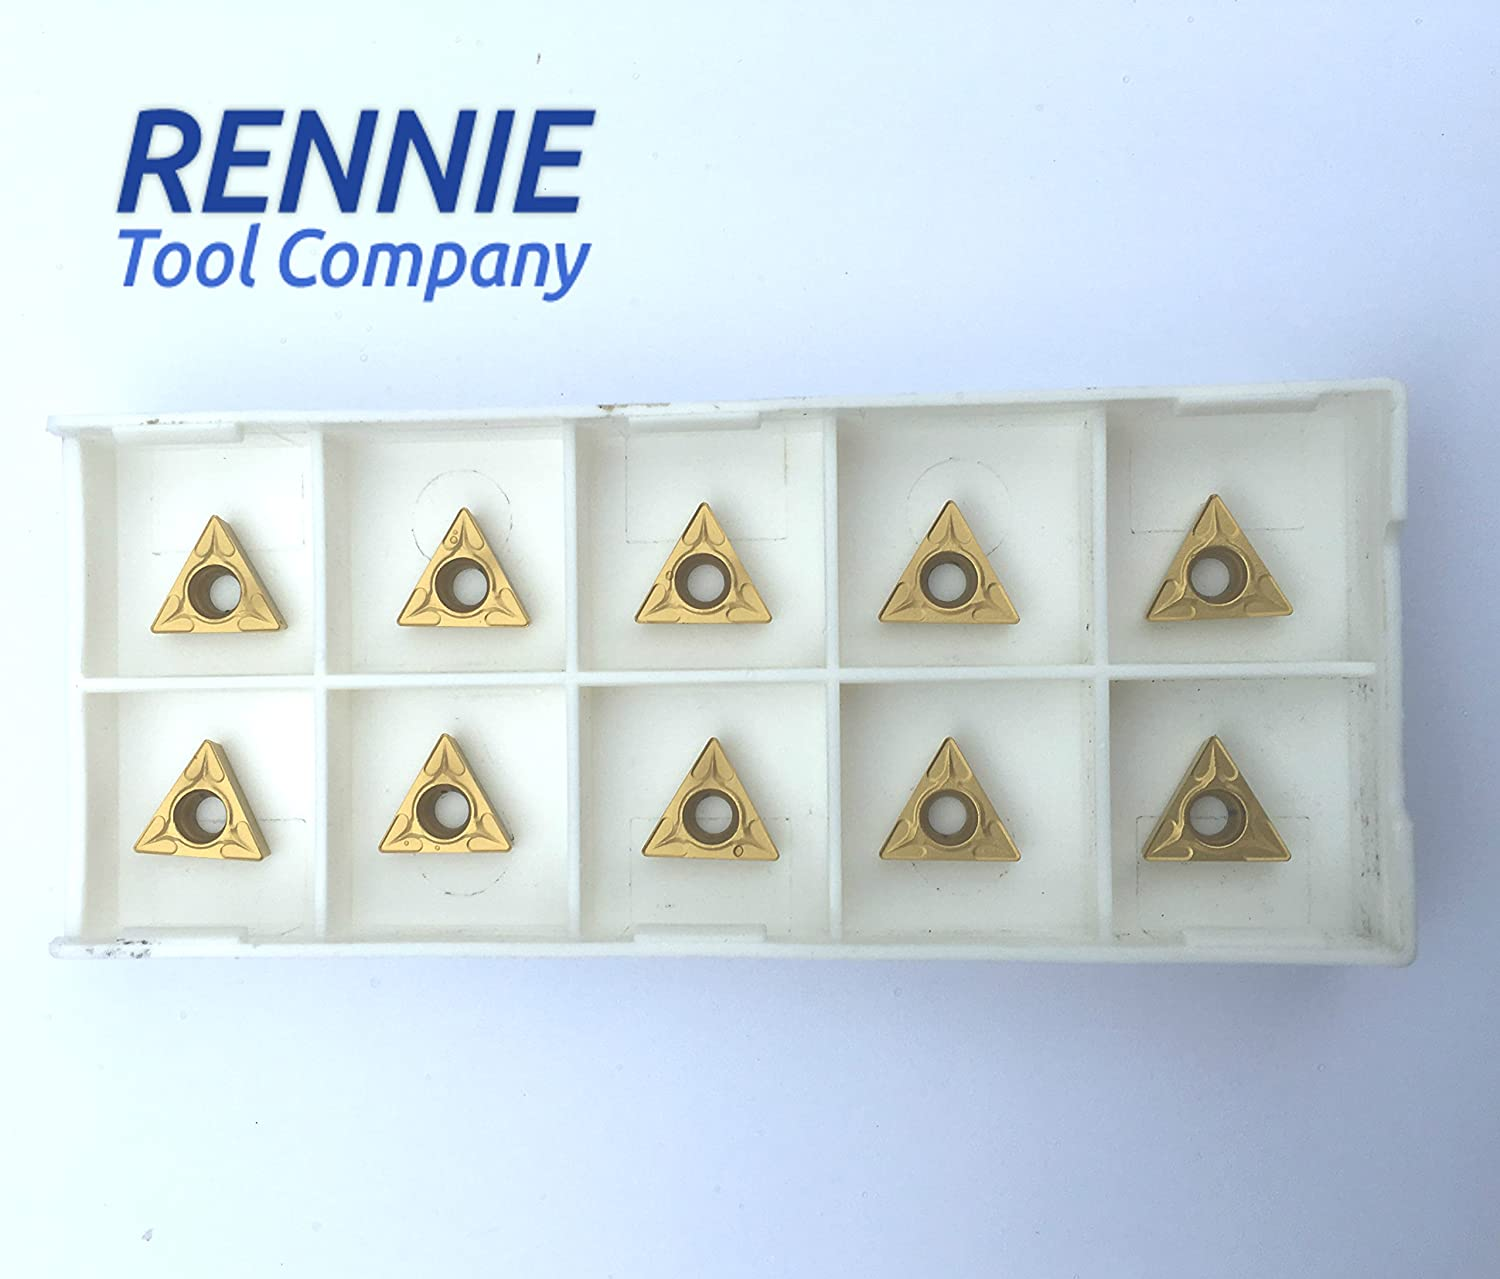 10 x TCMT 110204 P25C PVD Coated Inserts. For General Purpose Machining Of Steel/Stainless Rennietool.co.uk